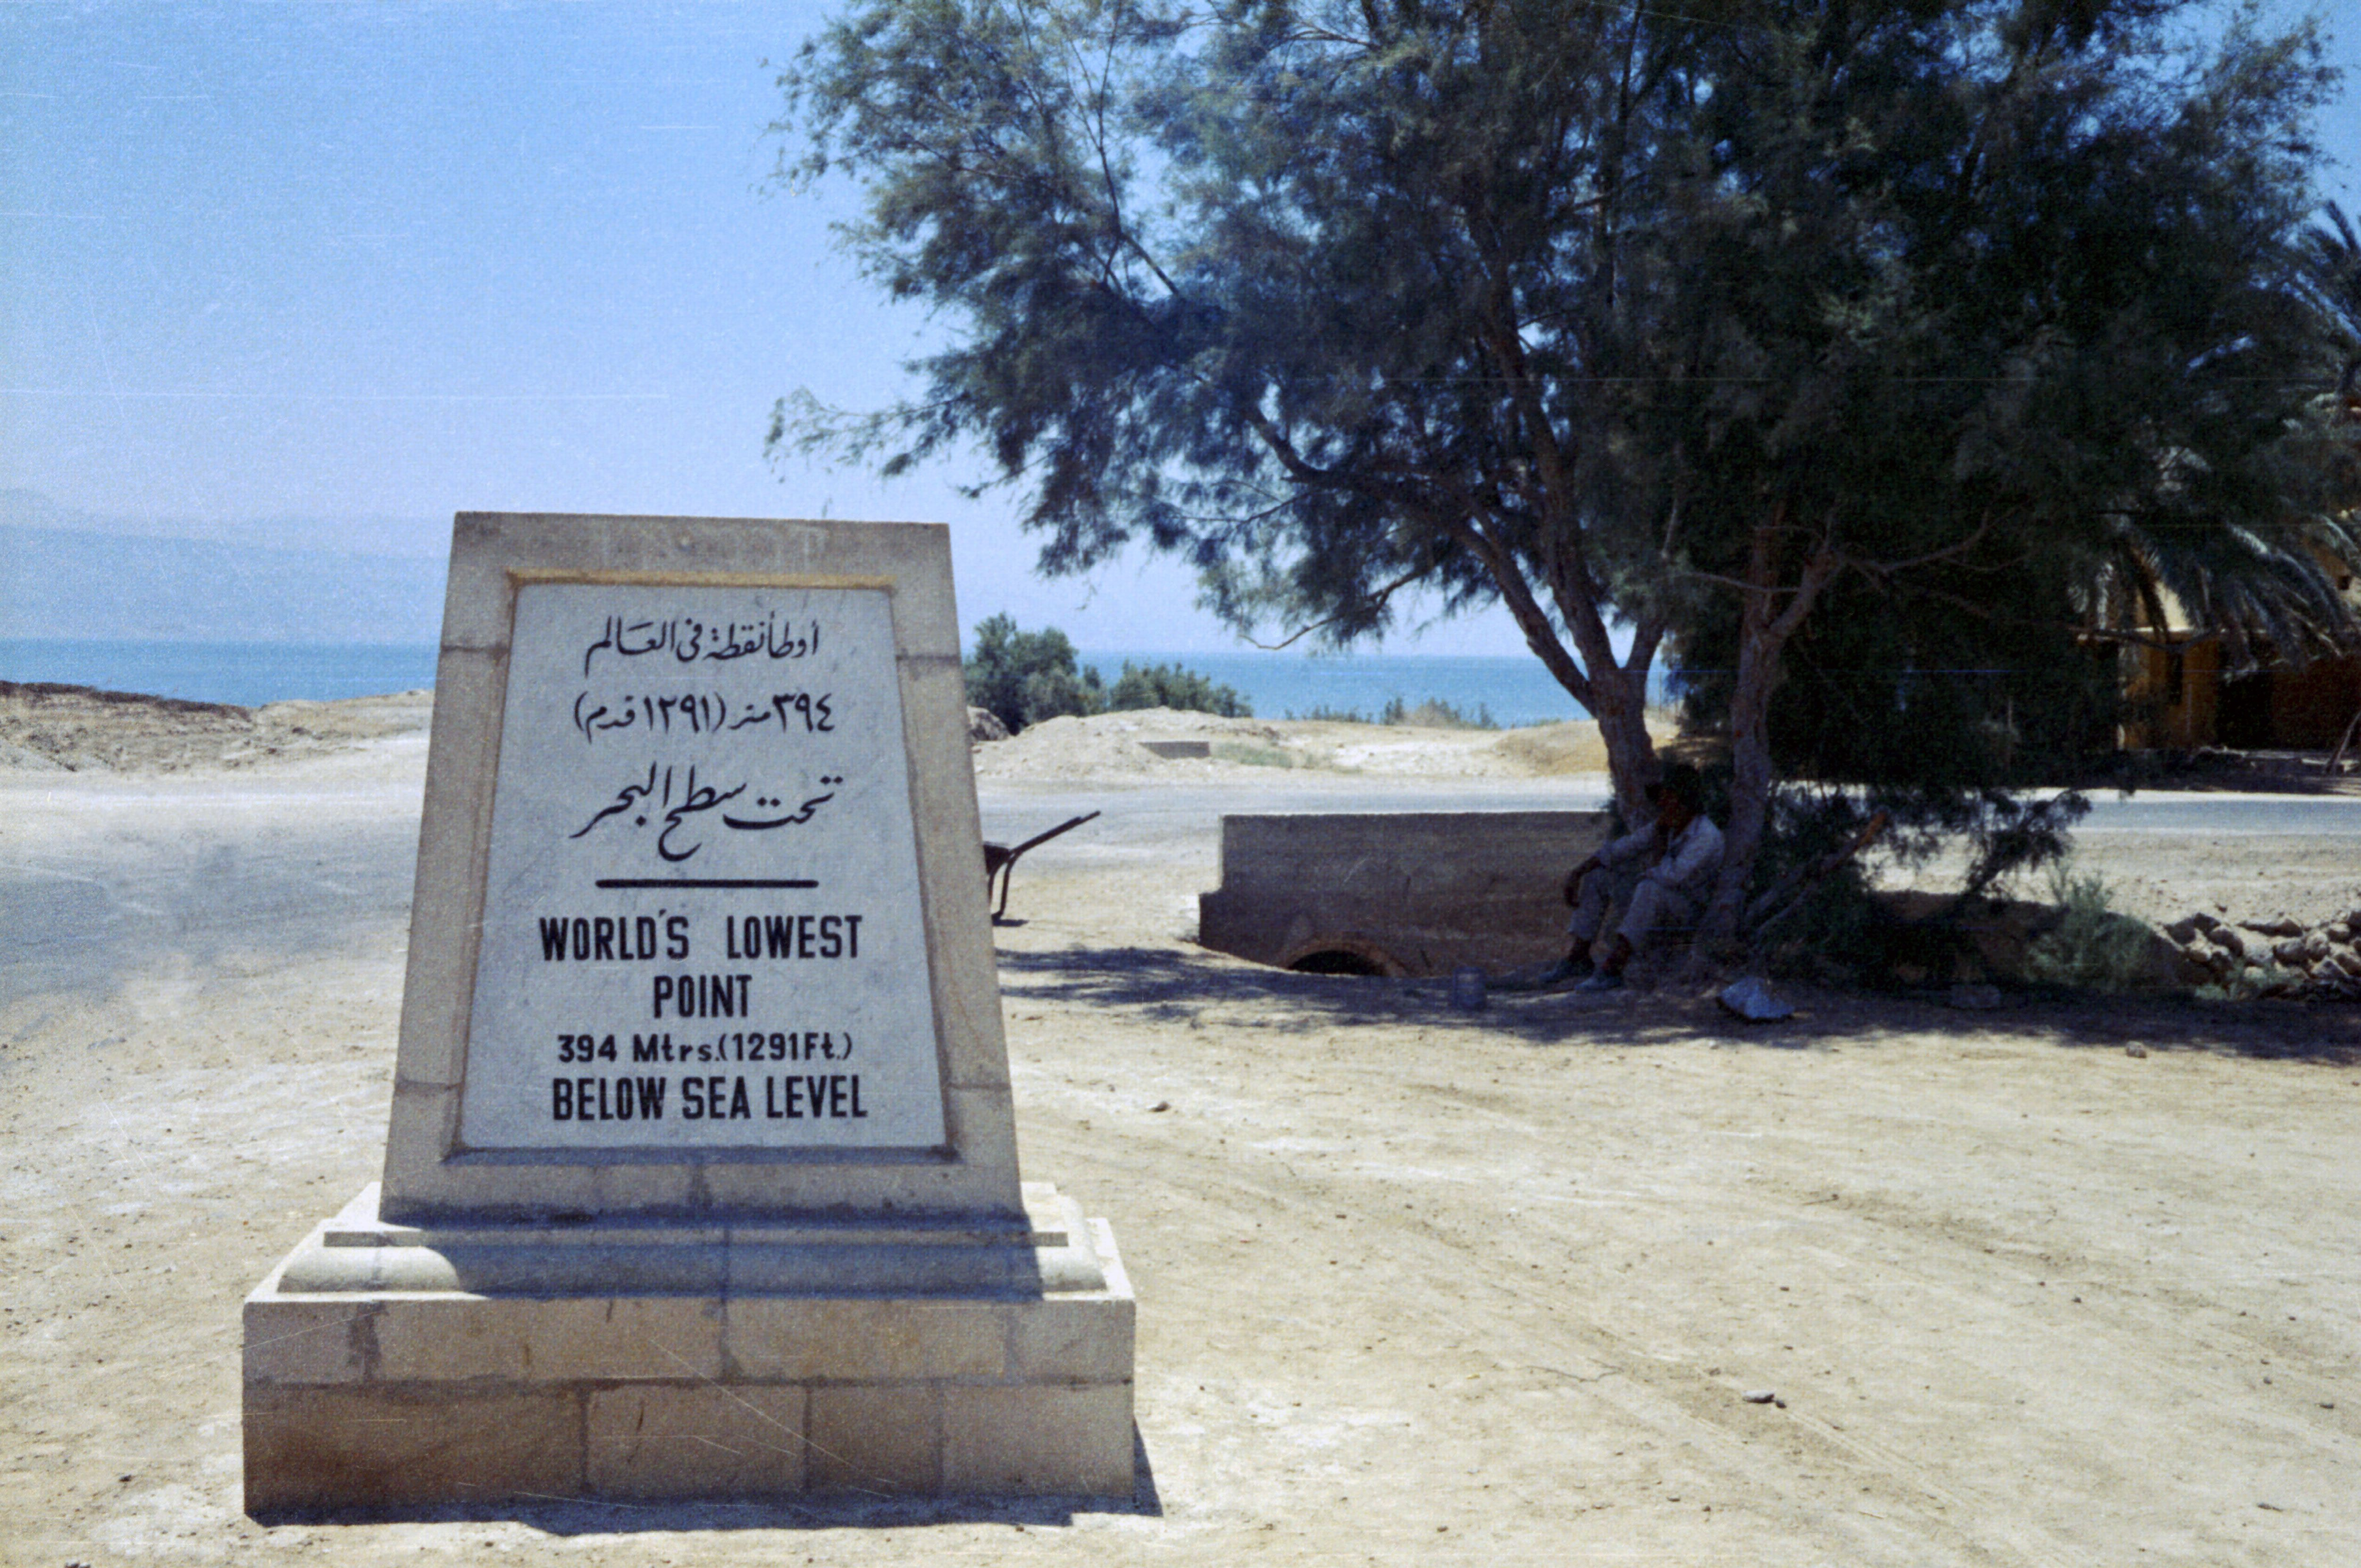 Below Sea Level 10 Of The Lowest Points In The World Dead Sea Sea Level Jordan Dead Sea